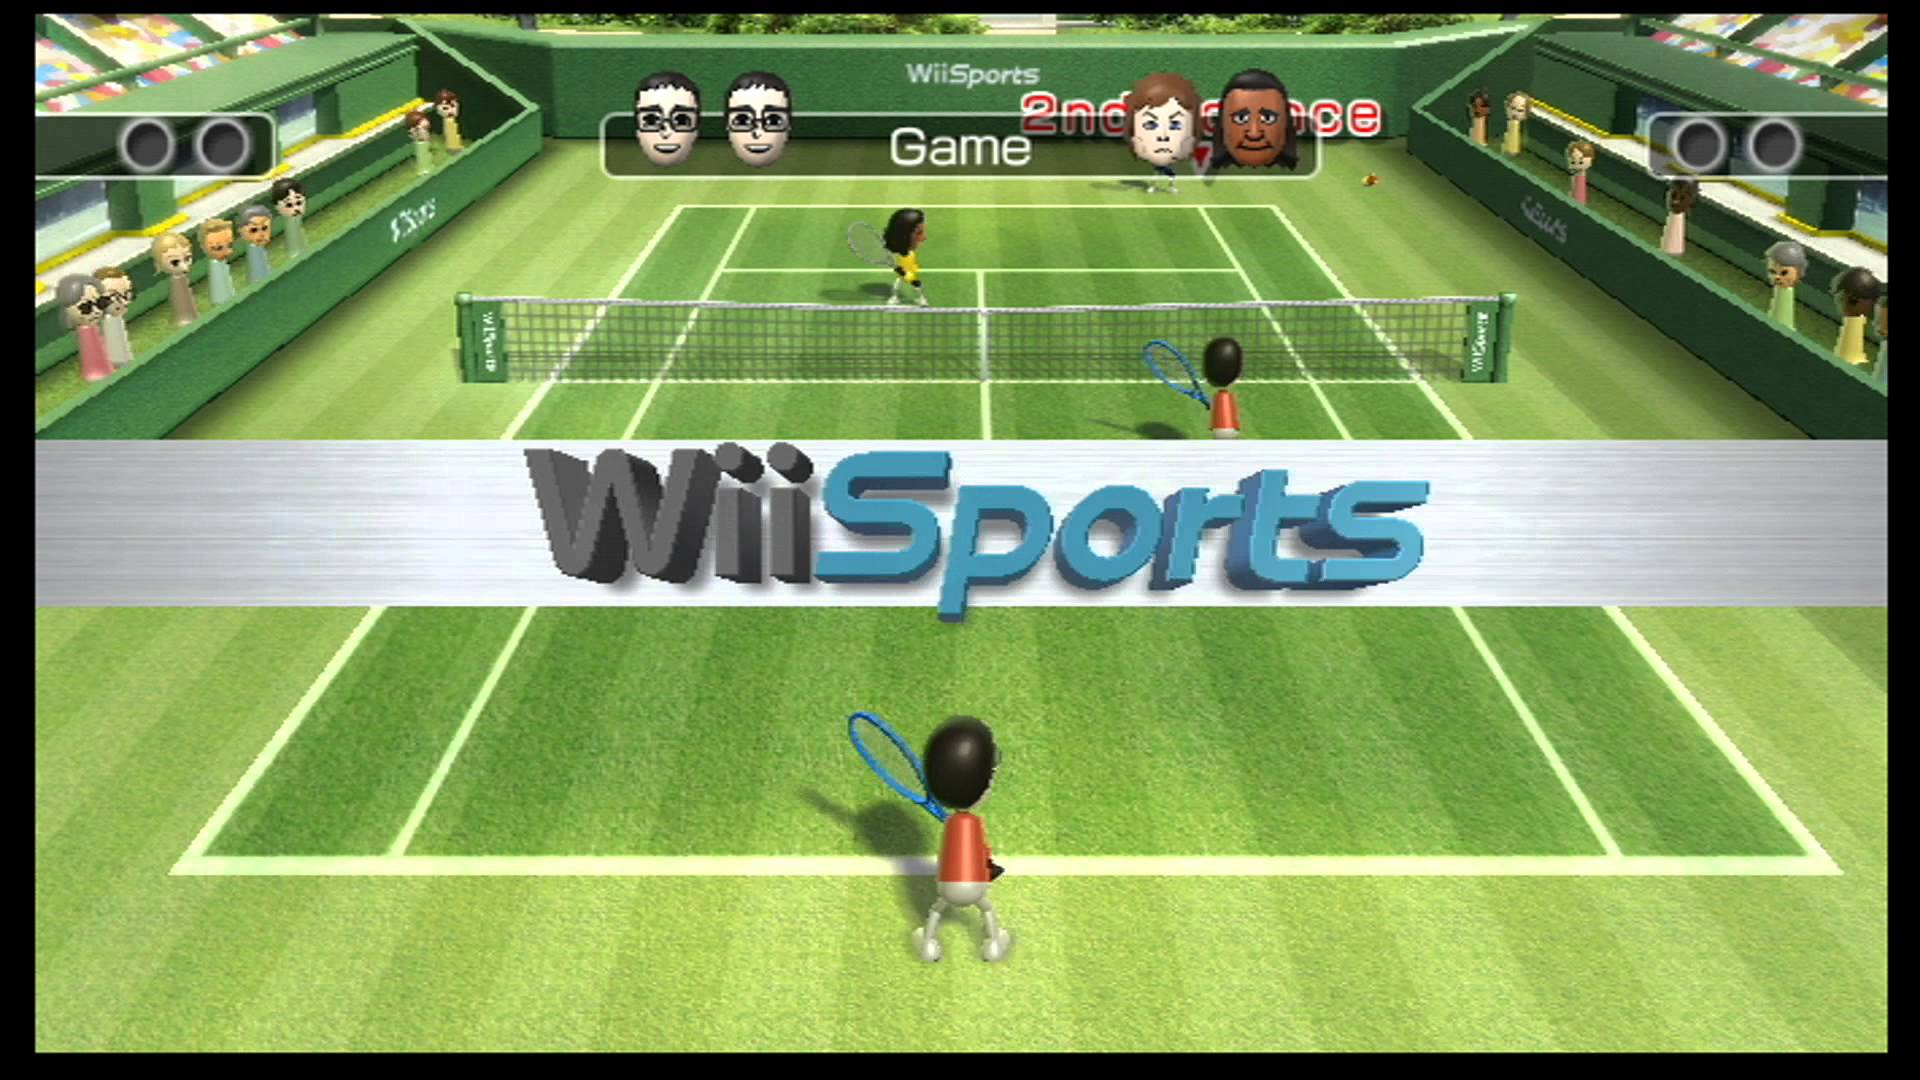 Was Uber CEO Travis Kalanick Really the 2nd Best Wii Tennis Player ...